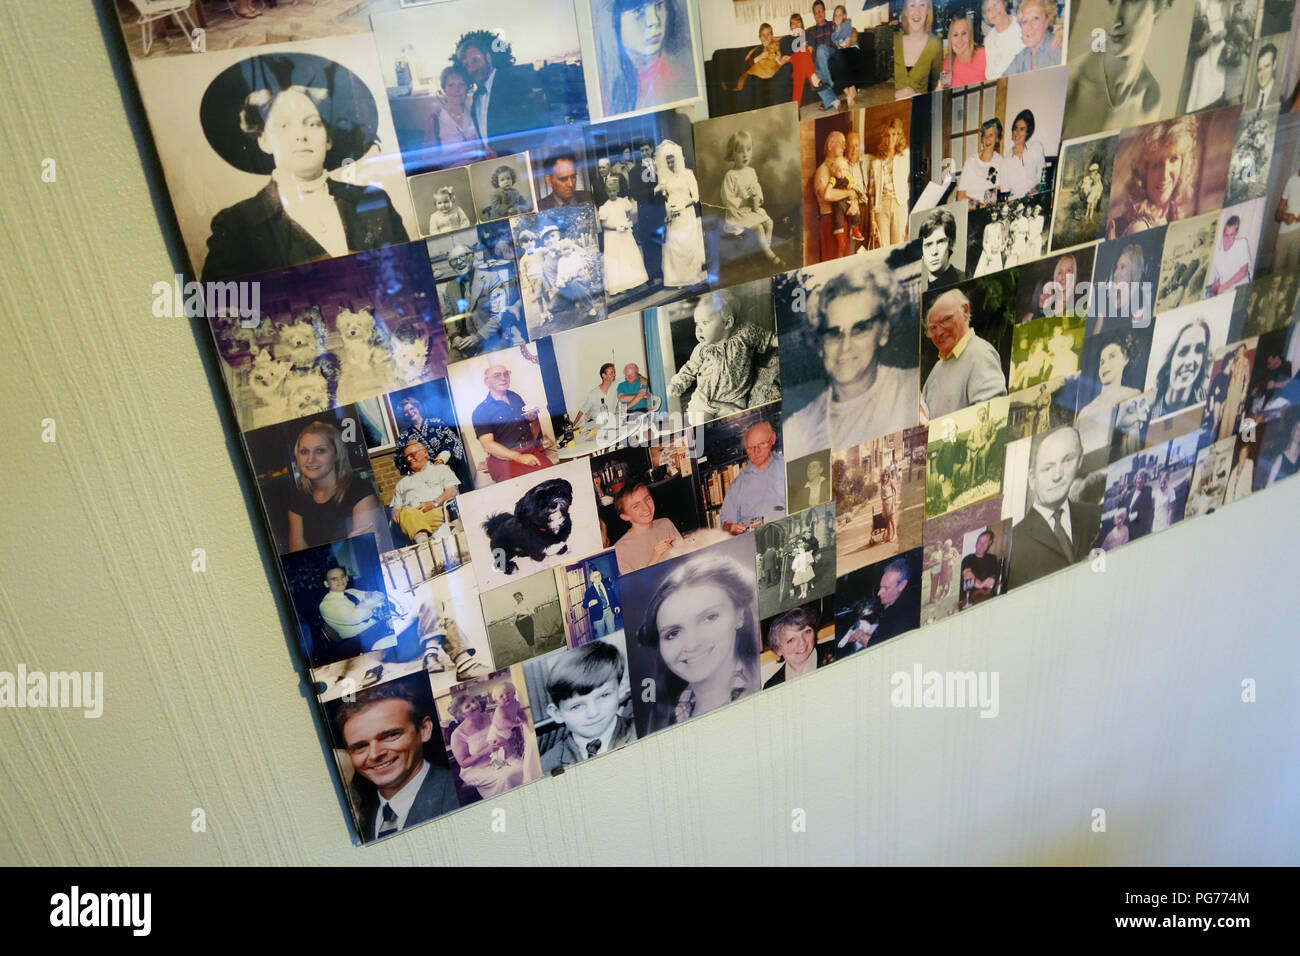 Bilder Collage Wand Bilder Collage Wand